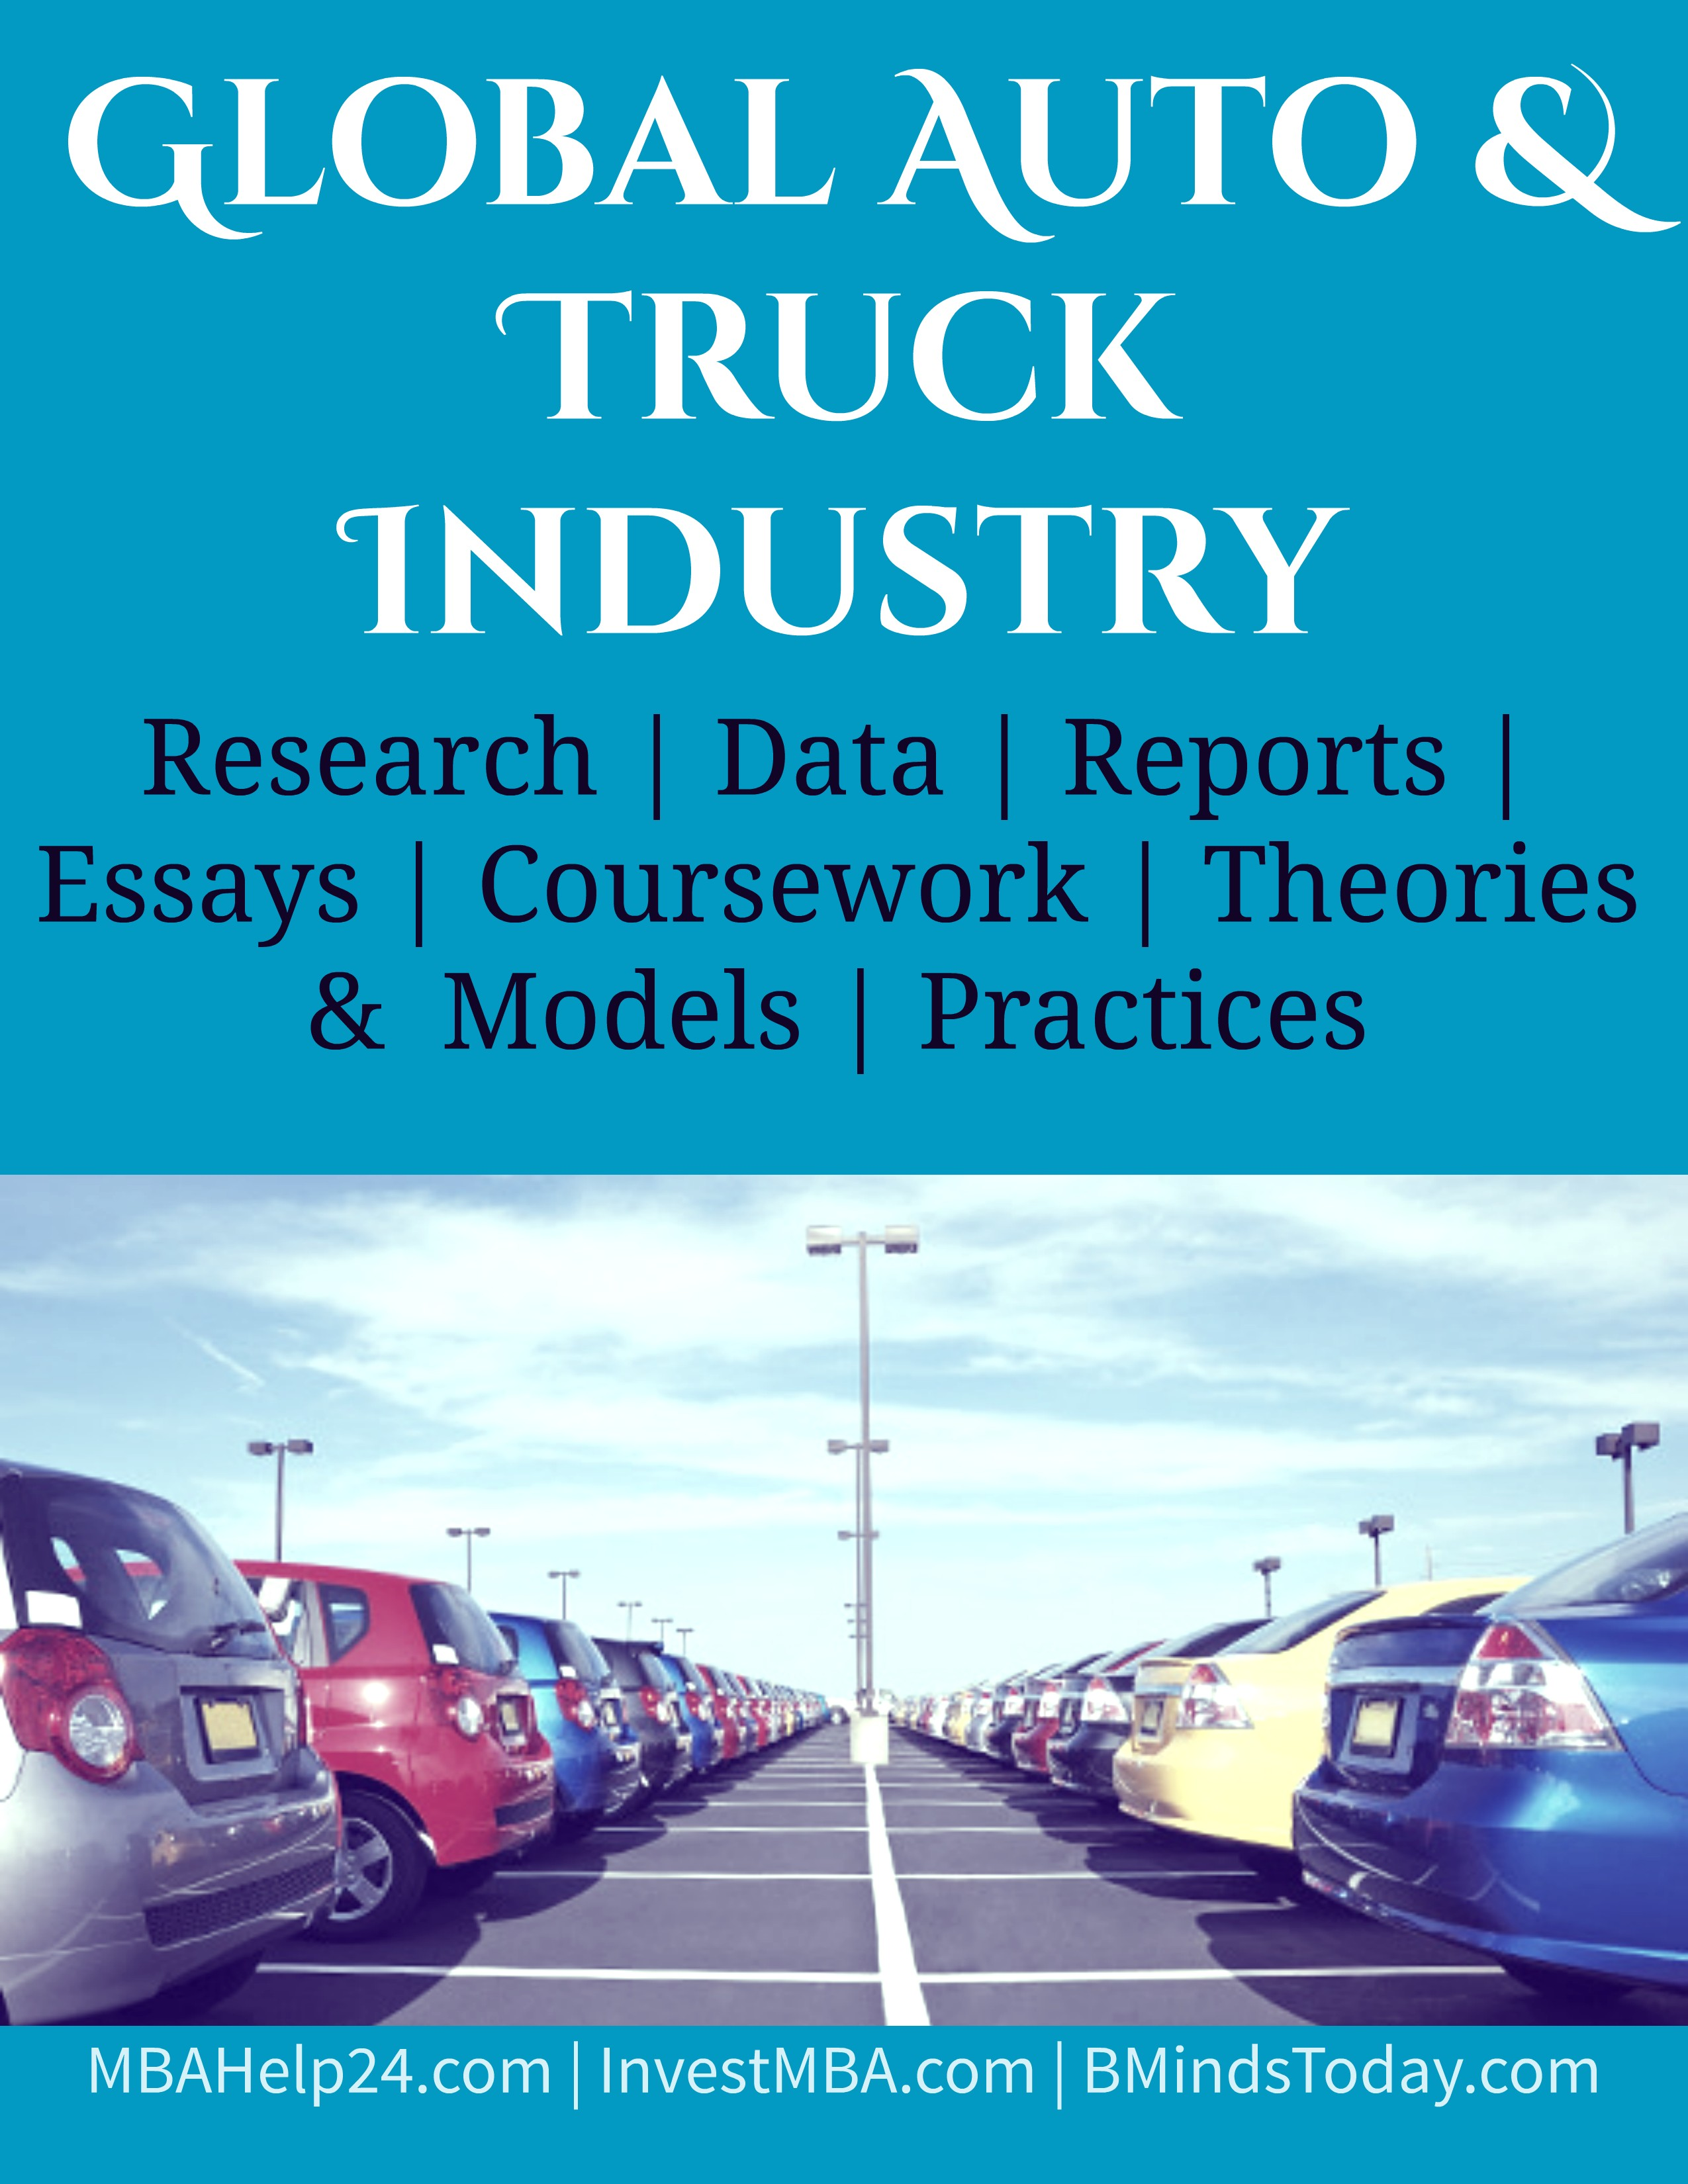 Global Auto and Truck Industry- MBA Automobiles